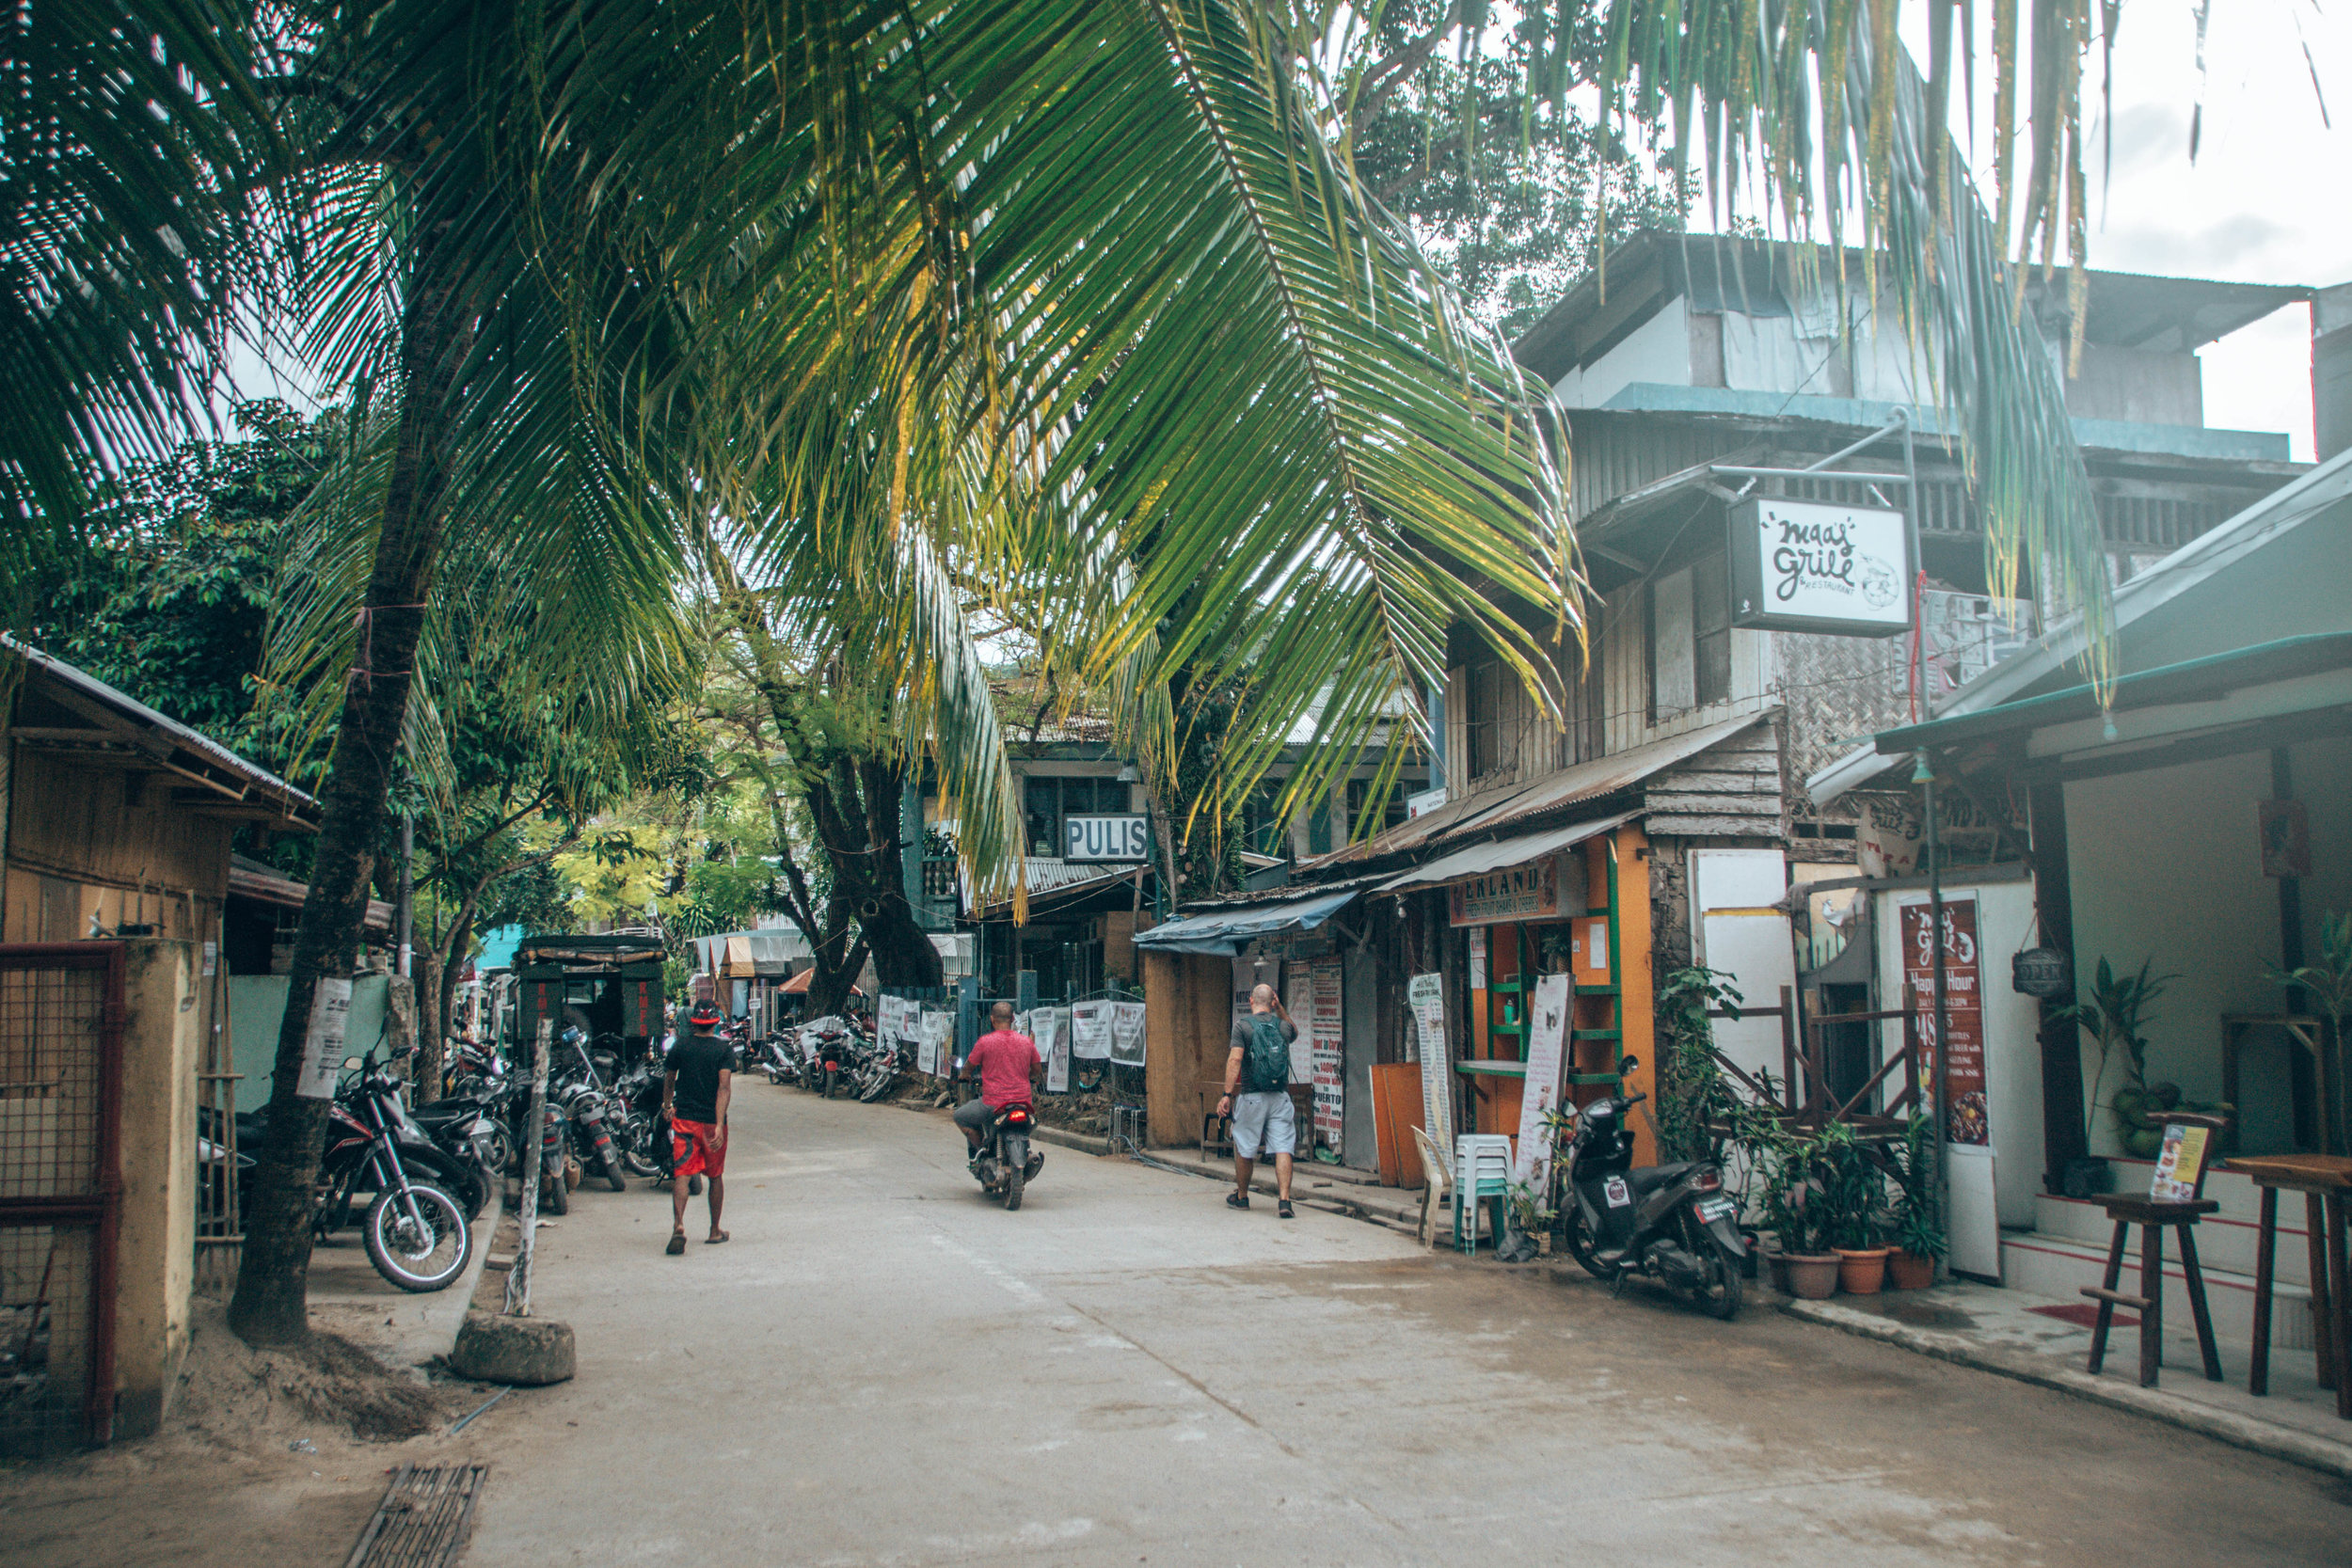 quaint small town of el nido, we loved it!